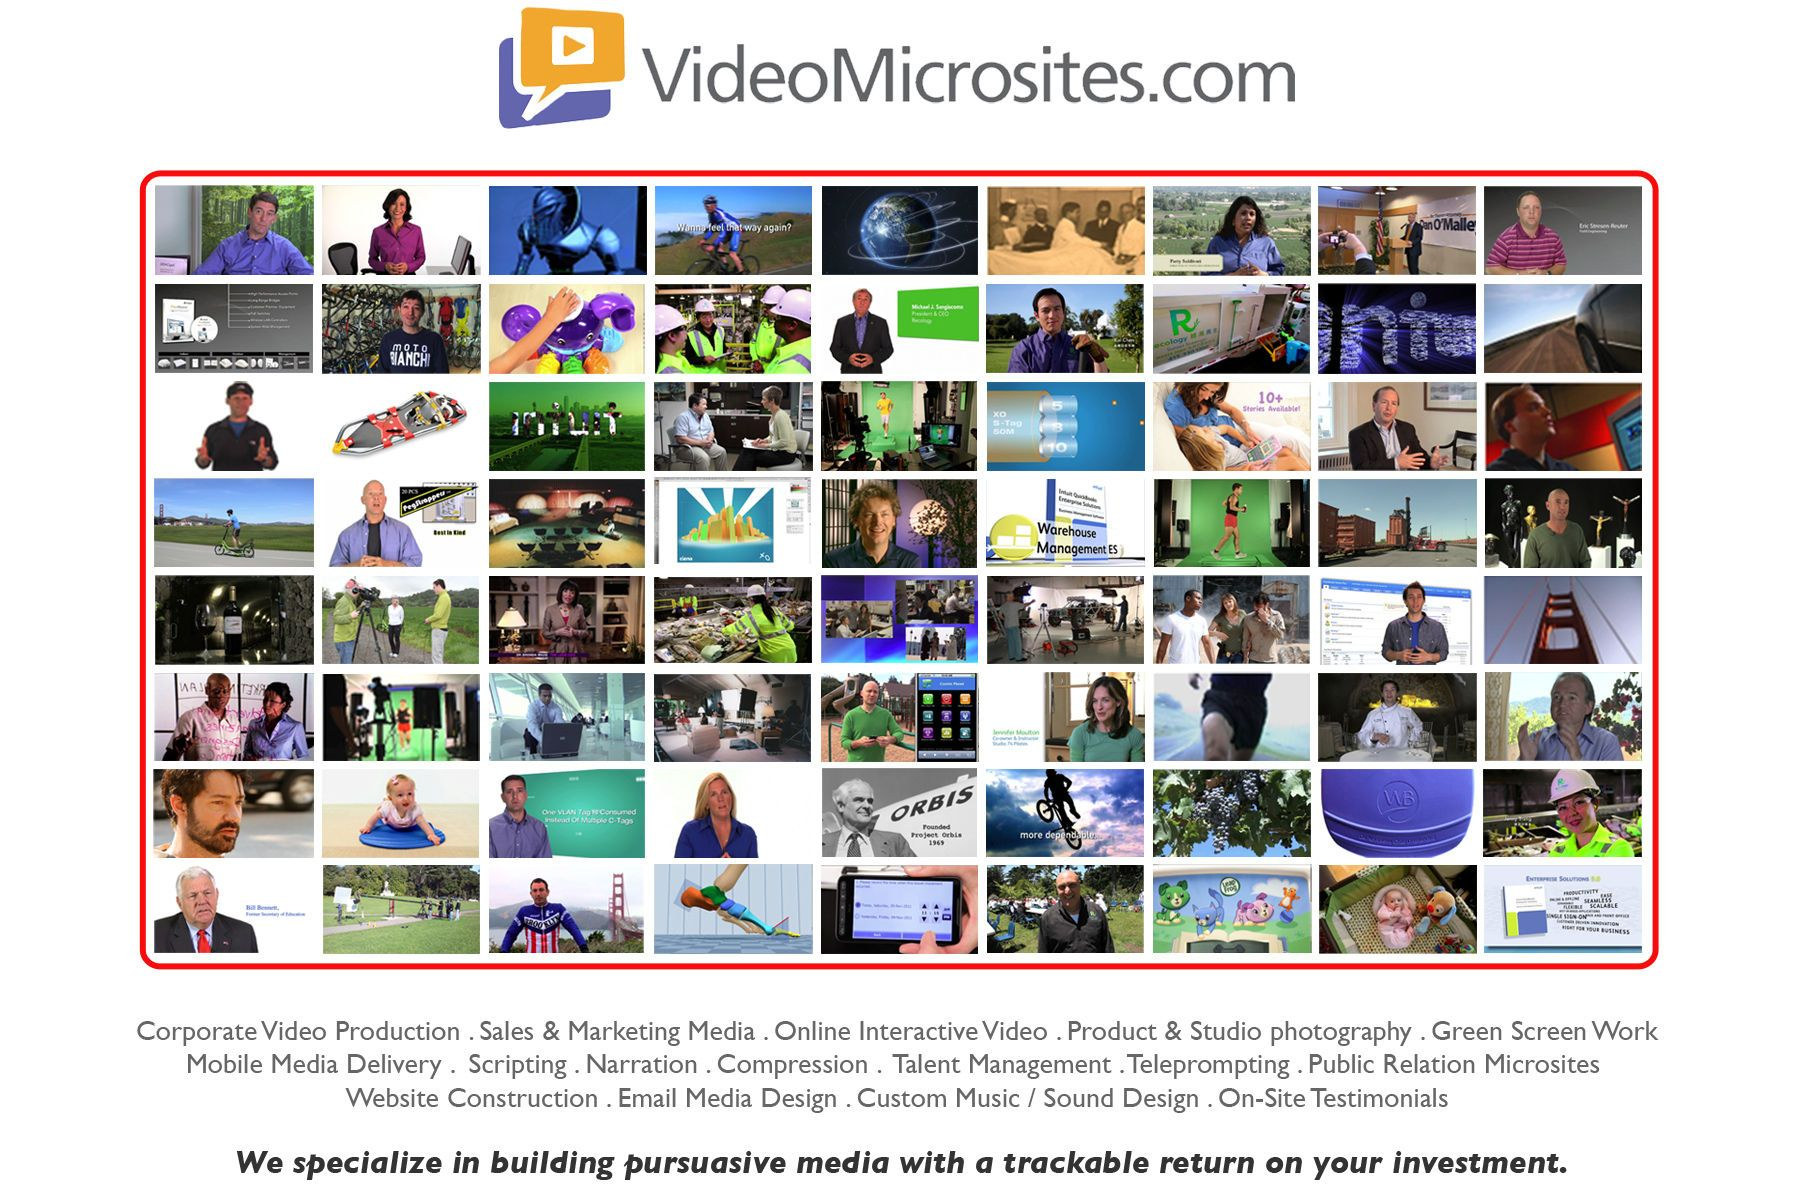 031612151554_1videomicrosites_hp_mosaic_without_demo.jpg